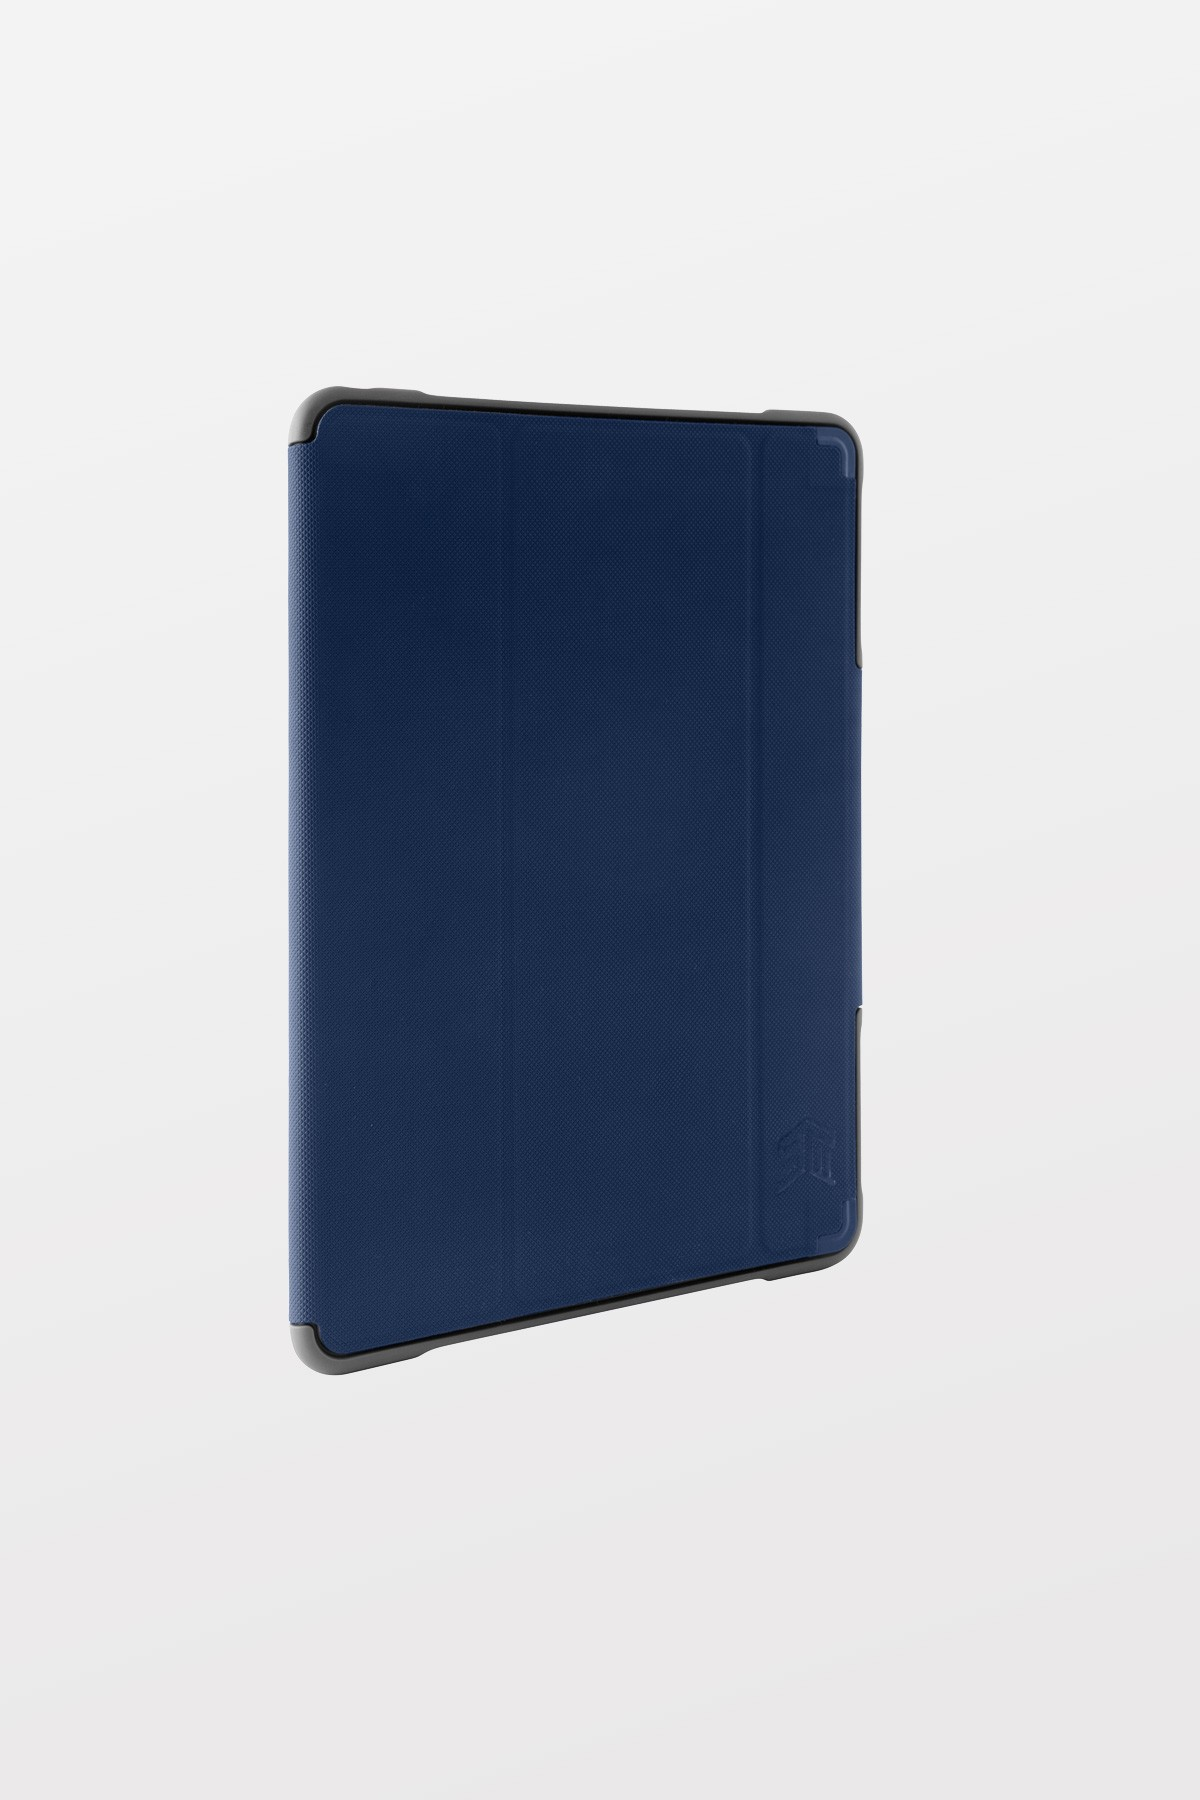 STM Dux Plus for iPad Pro 9.7-inch - Blue